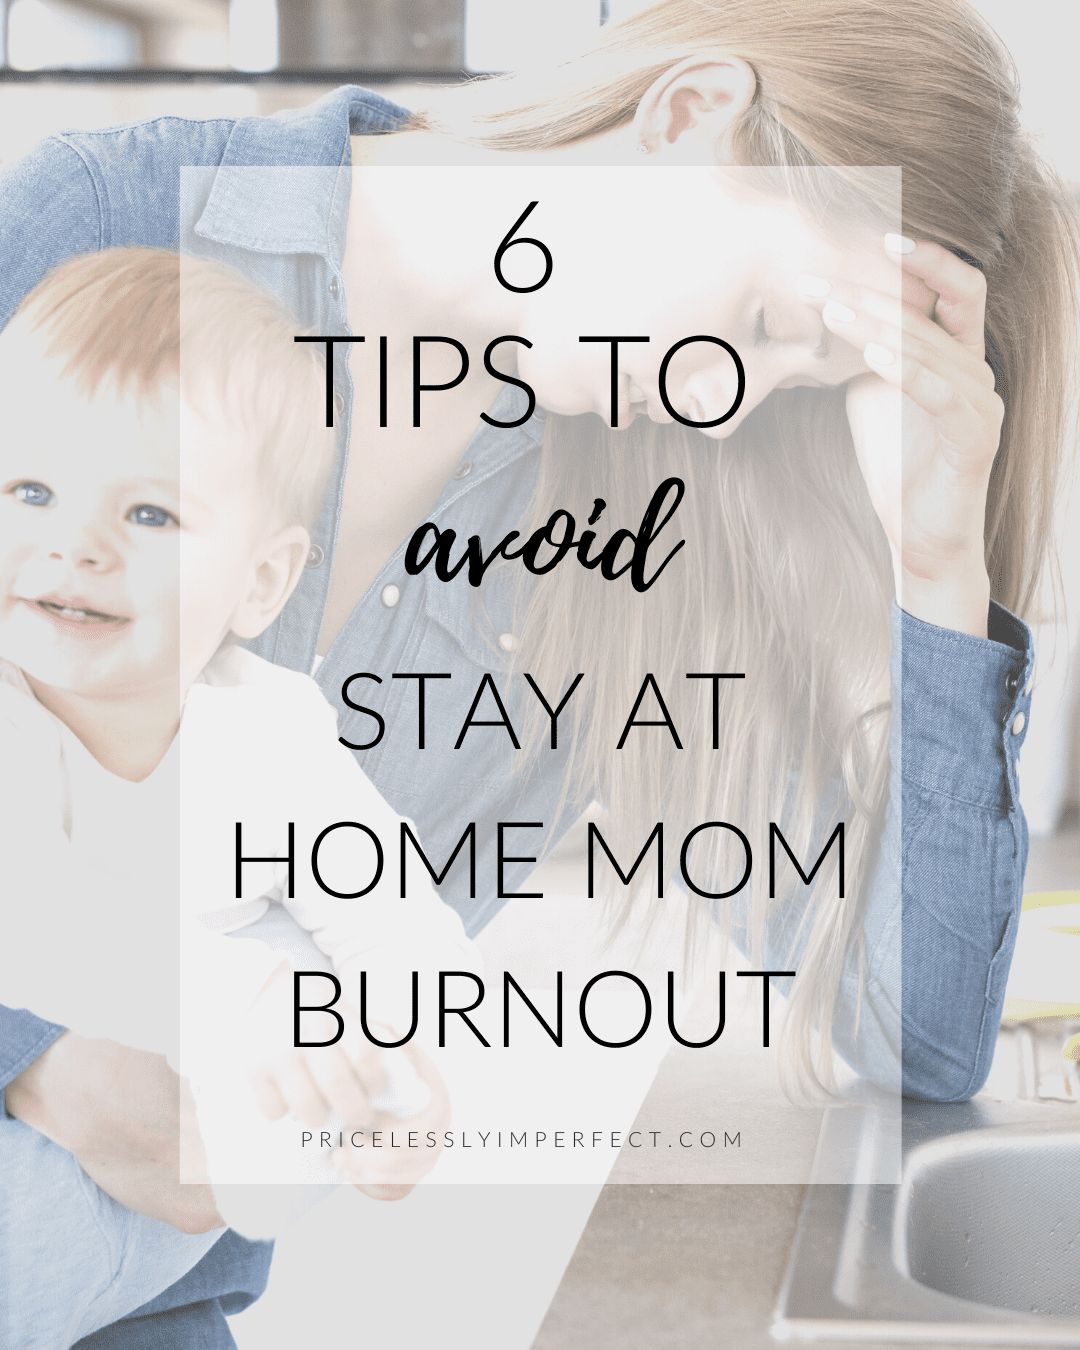 6 tips to avoid stay at home mom burnout